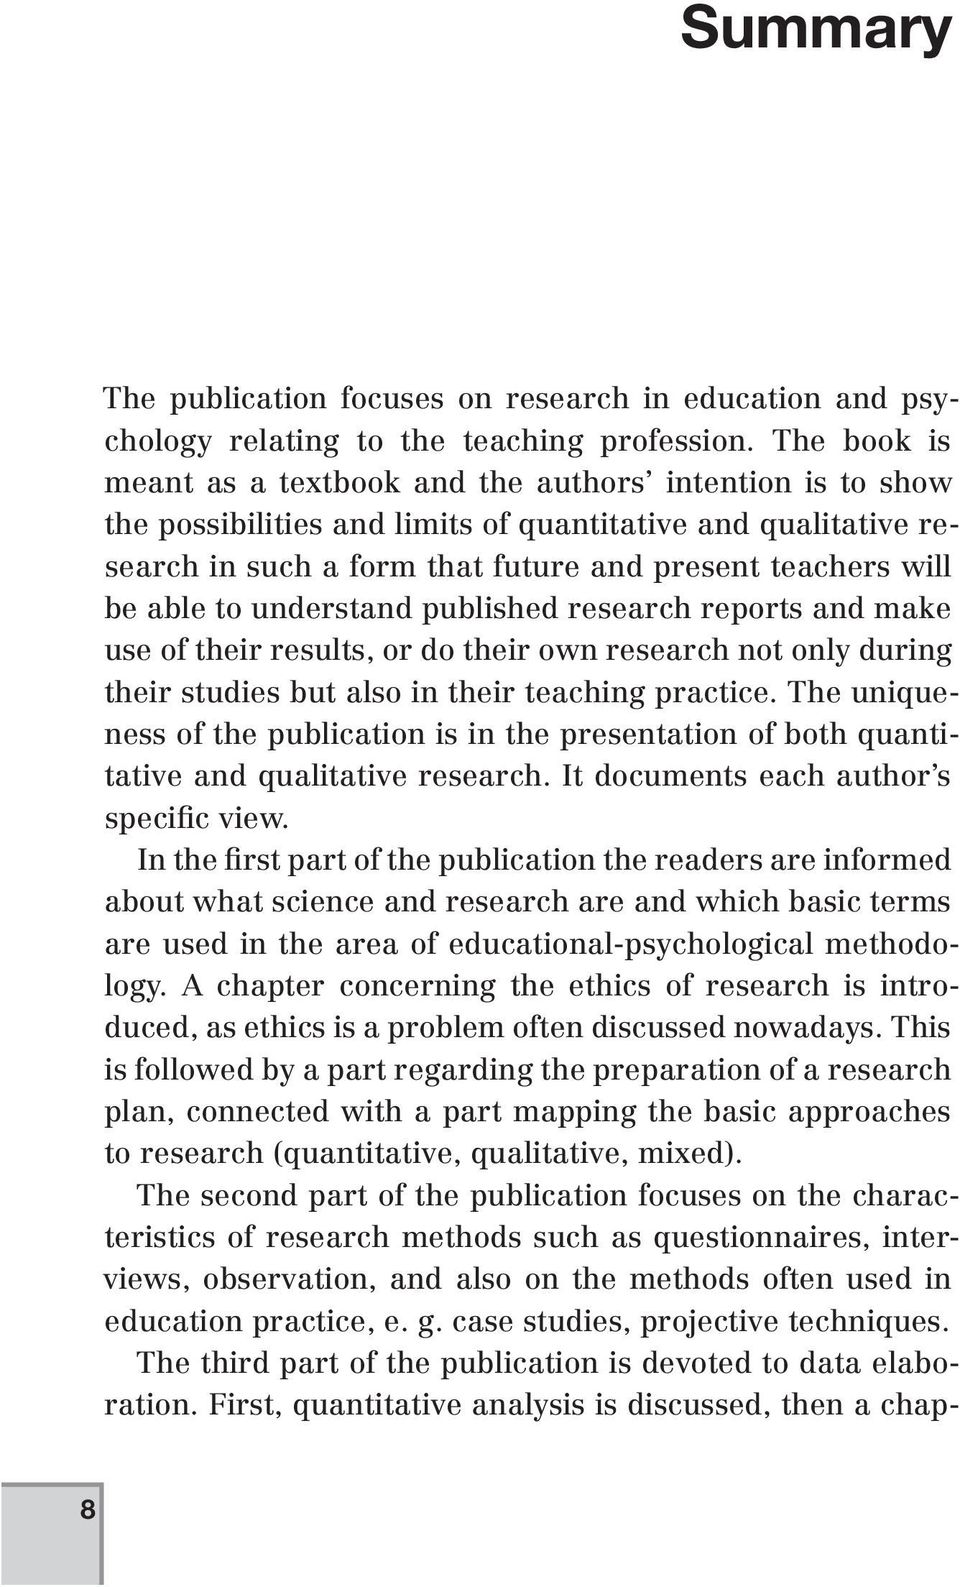 to understand published research reports and make use of their results, or do their own research not only during their studies but also in their teaching practice.